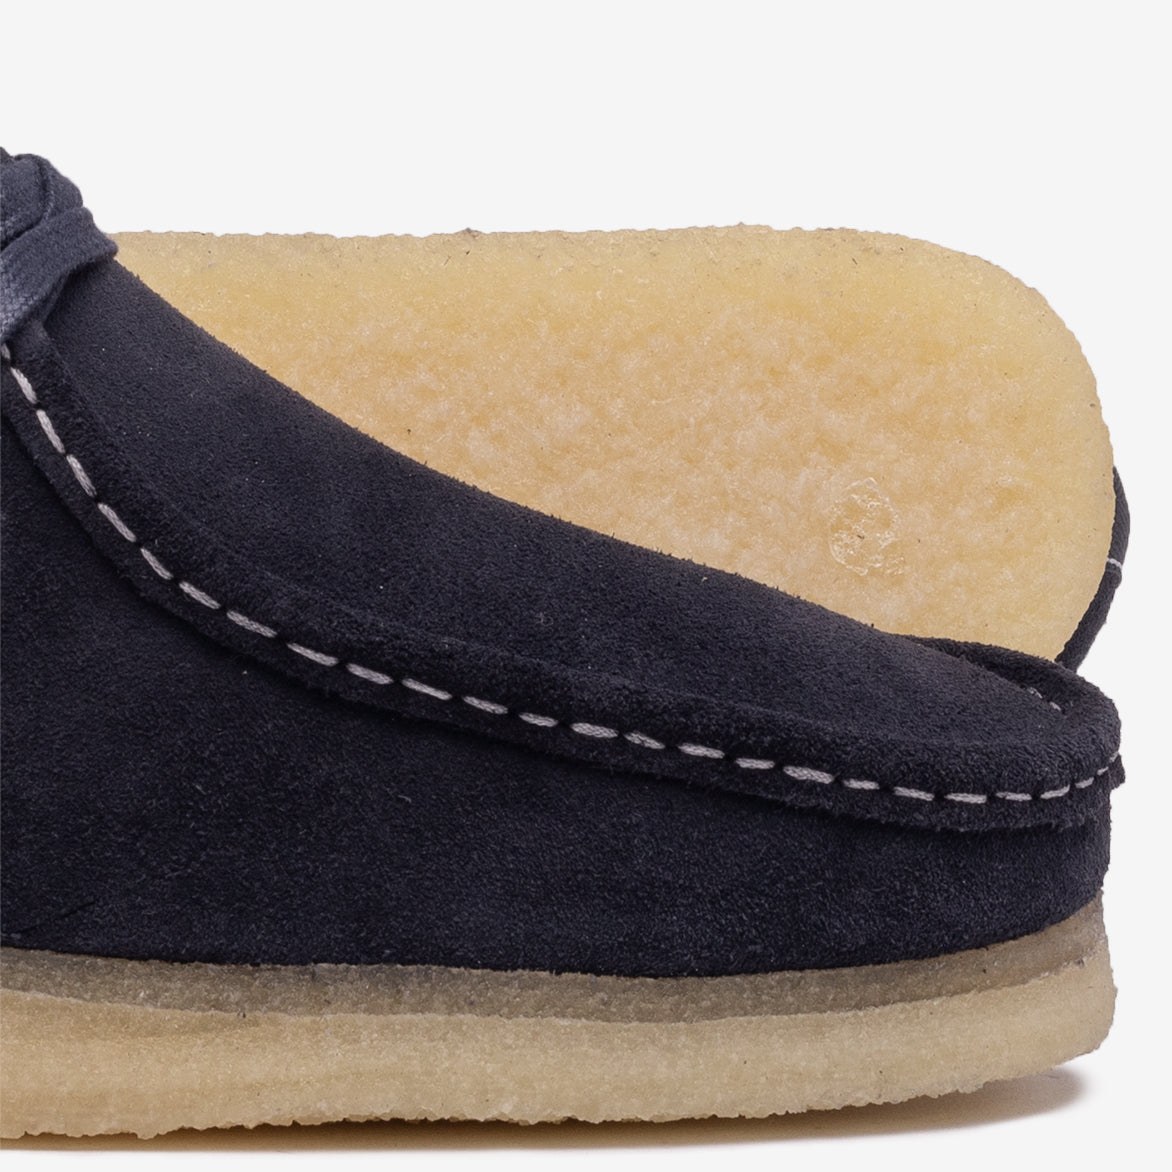 WALLABEE - INK SUEDE